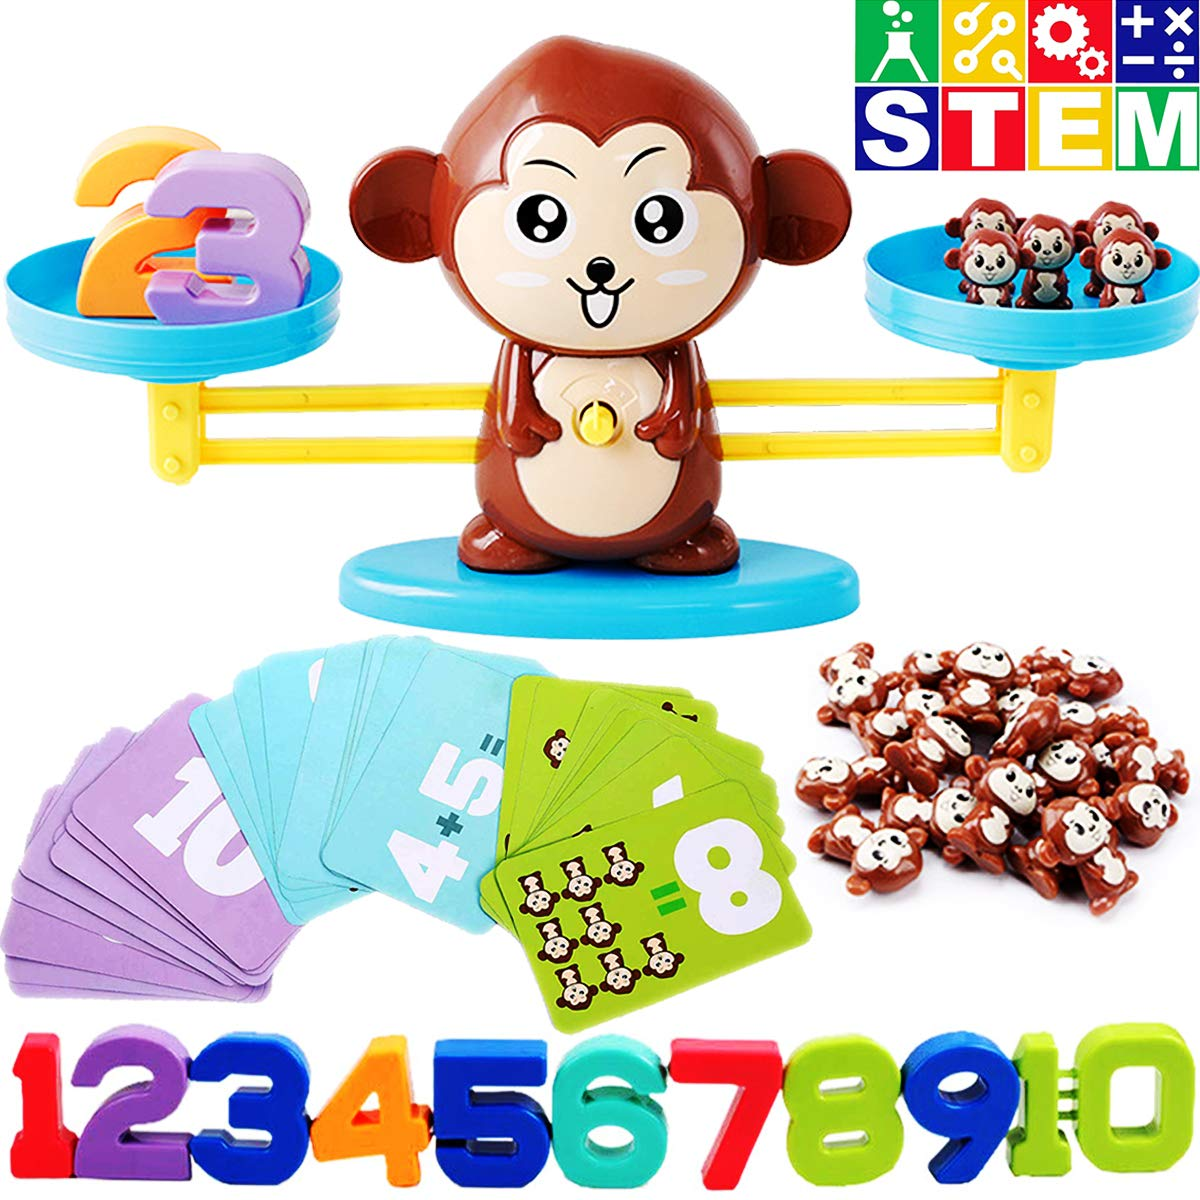 CozyBomB Monkey Balance Counting Cool Math Games - STEM Toys for 3 4 5 Year olds Cool Math Educational Kindergarten - Number Learning Material for Boys and Girls by CozyBomB